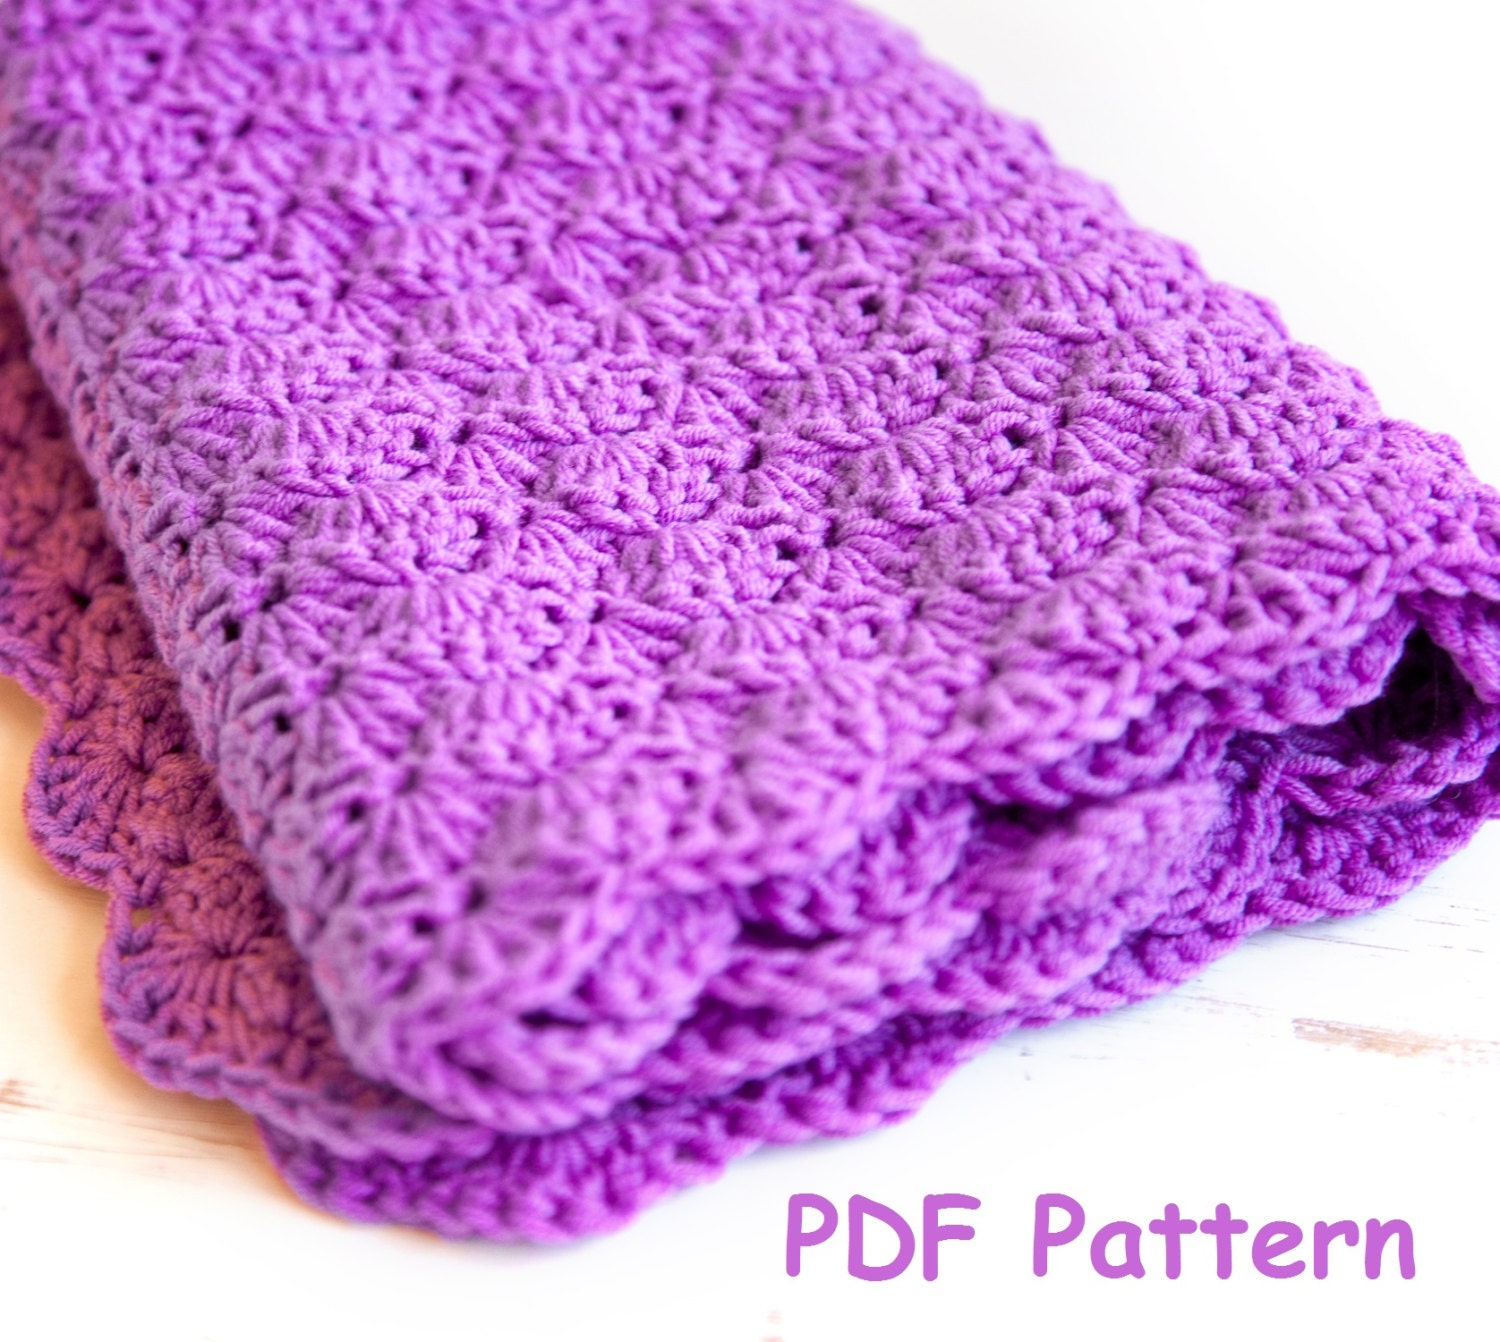 Crochet shell stitch baby blanket pattern easy crochet for zoom bankloansurffo Gallery